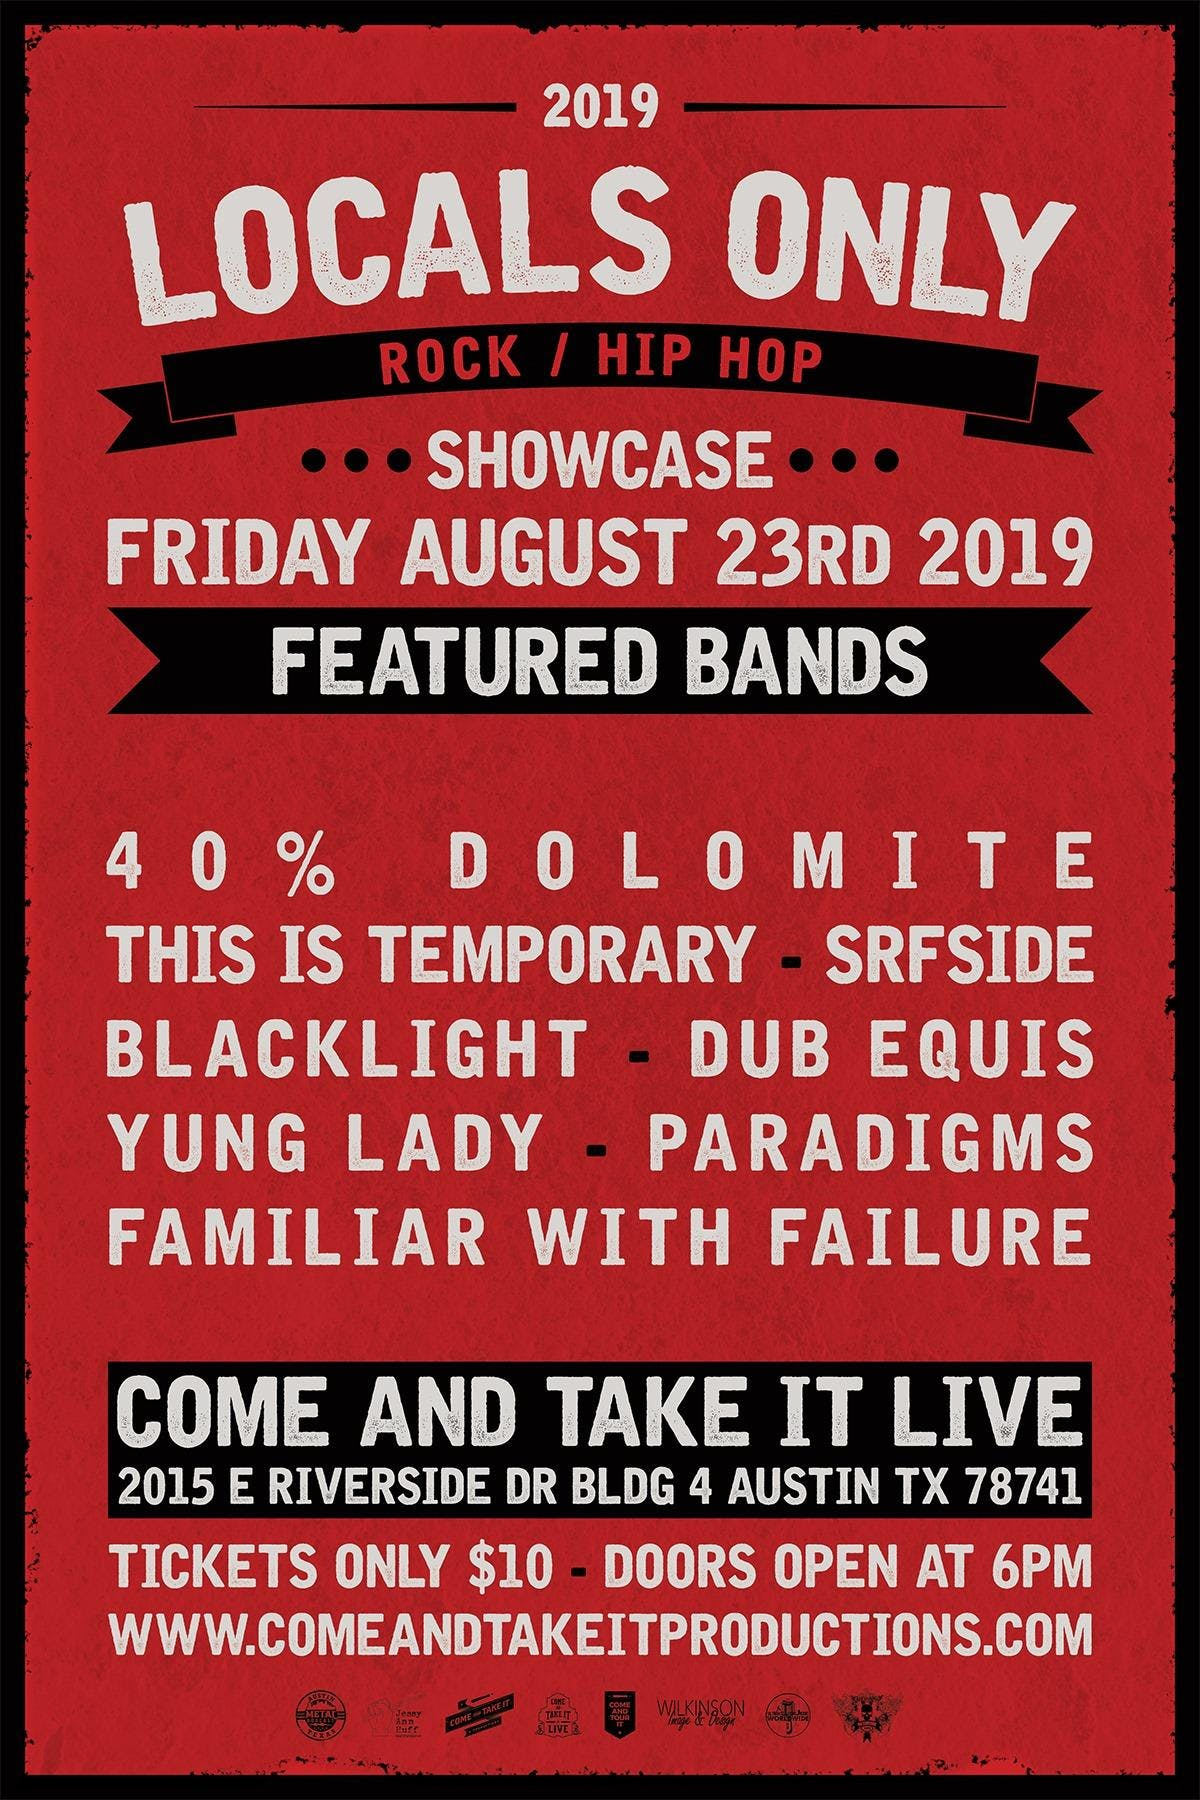 LOCALS ONLY: Rock / Hip Hop Showcase